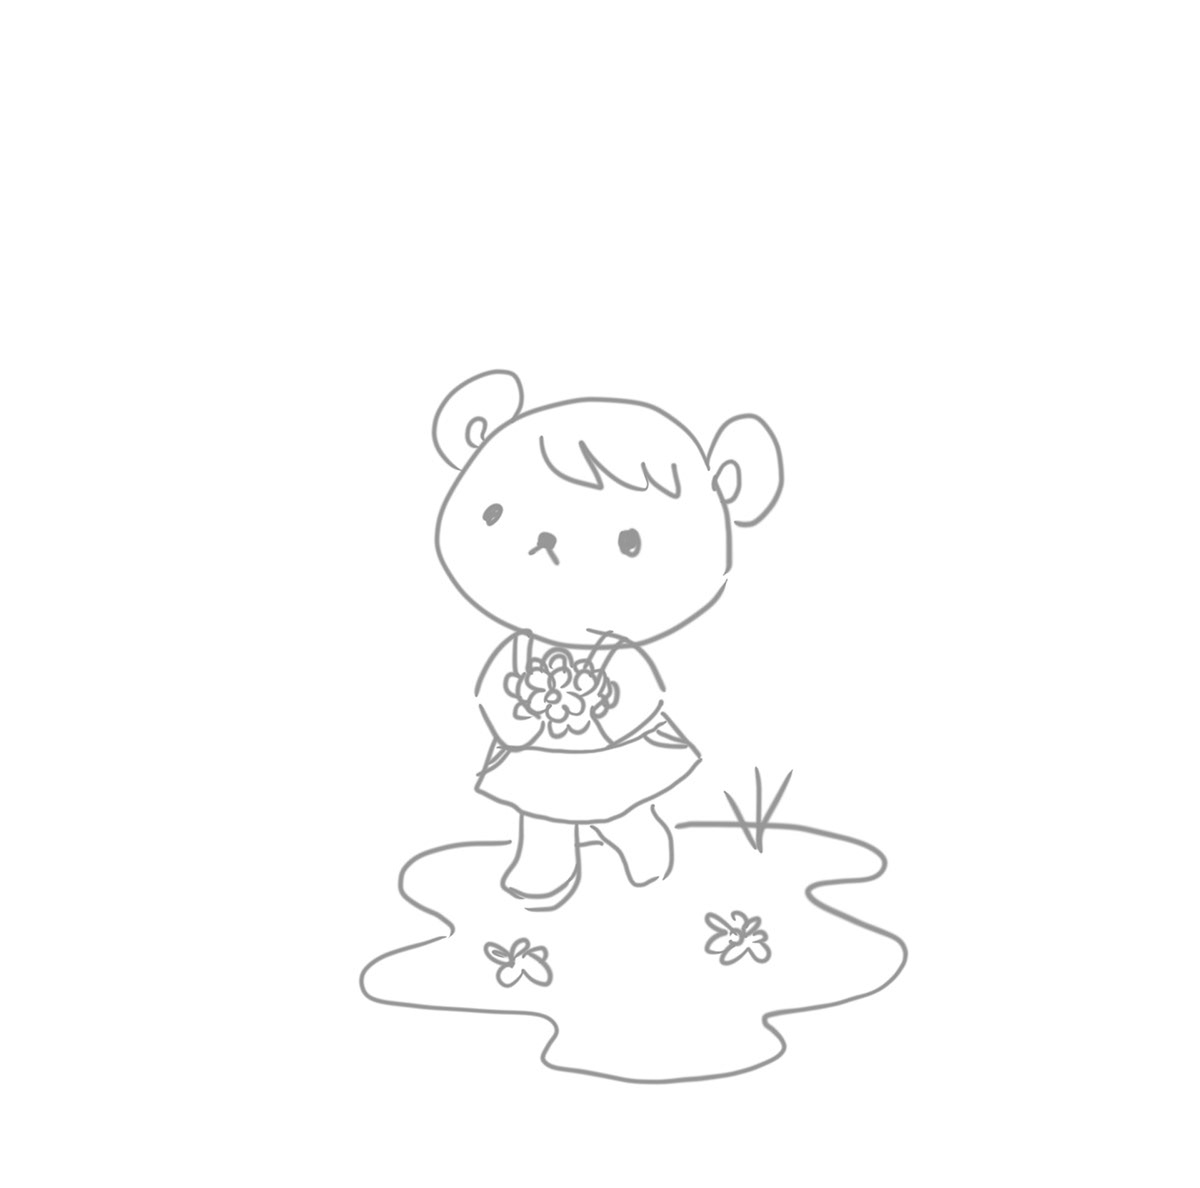 sketch of a cute bear holding flowers